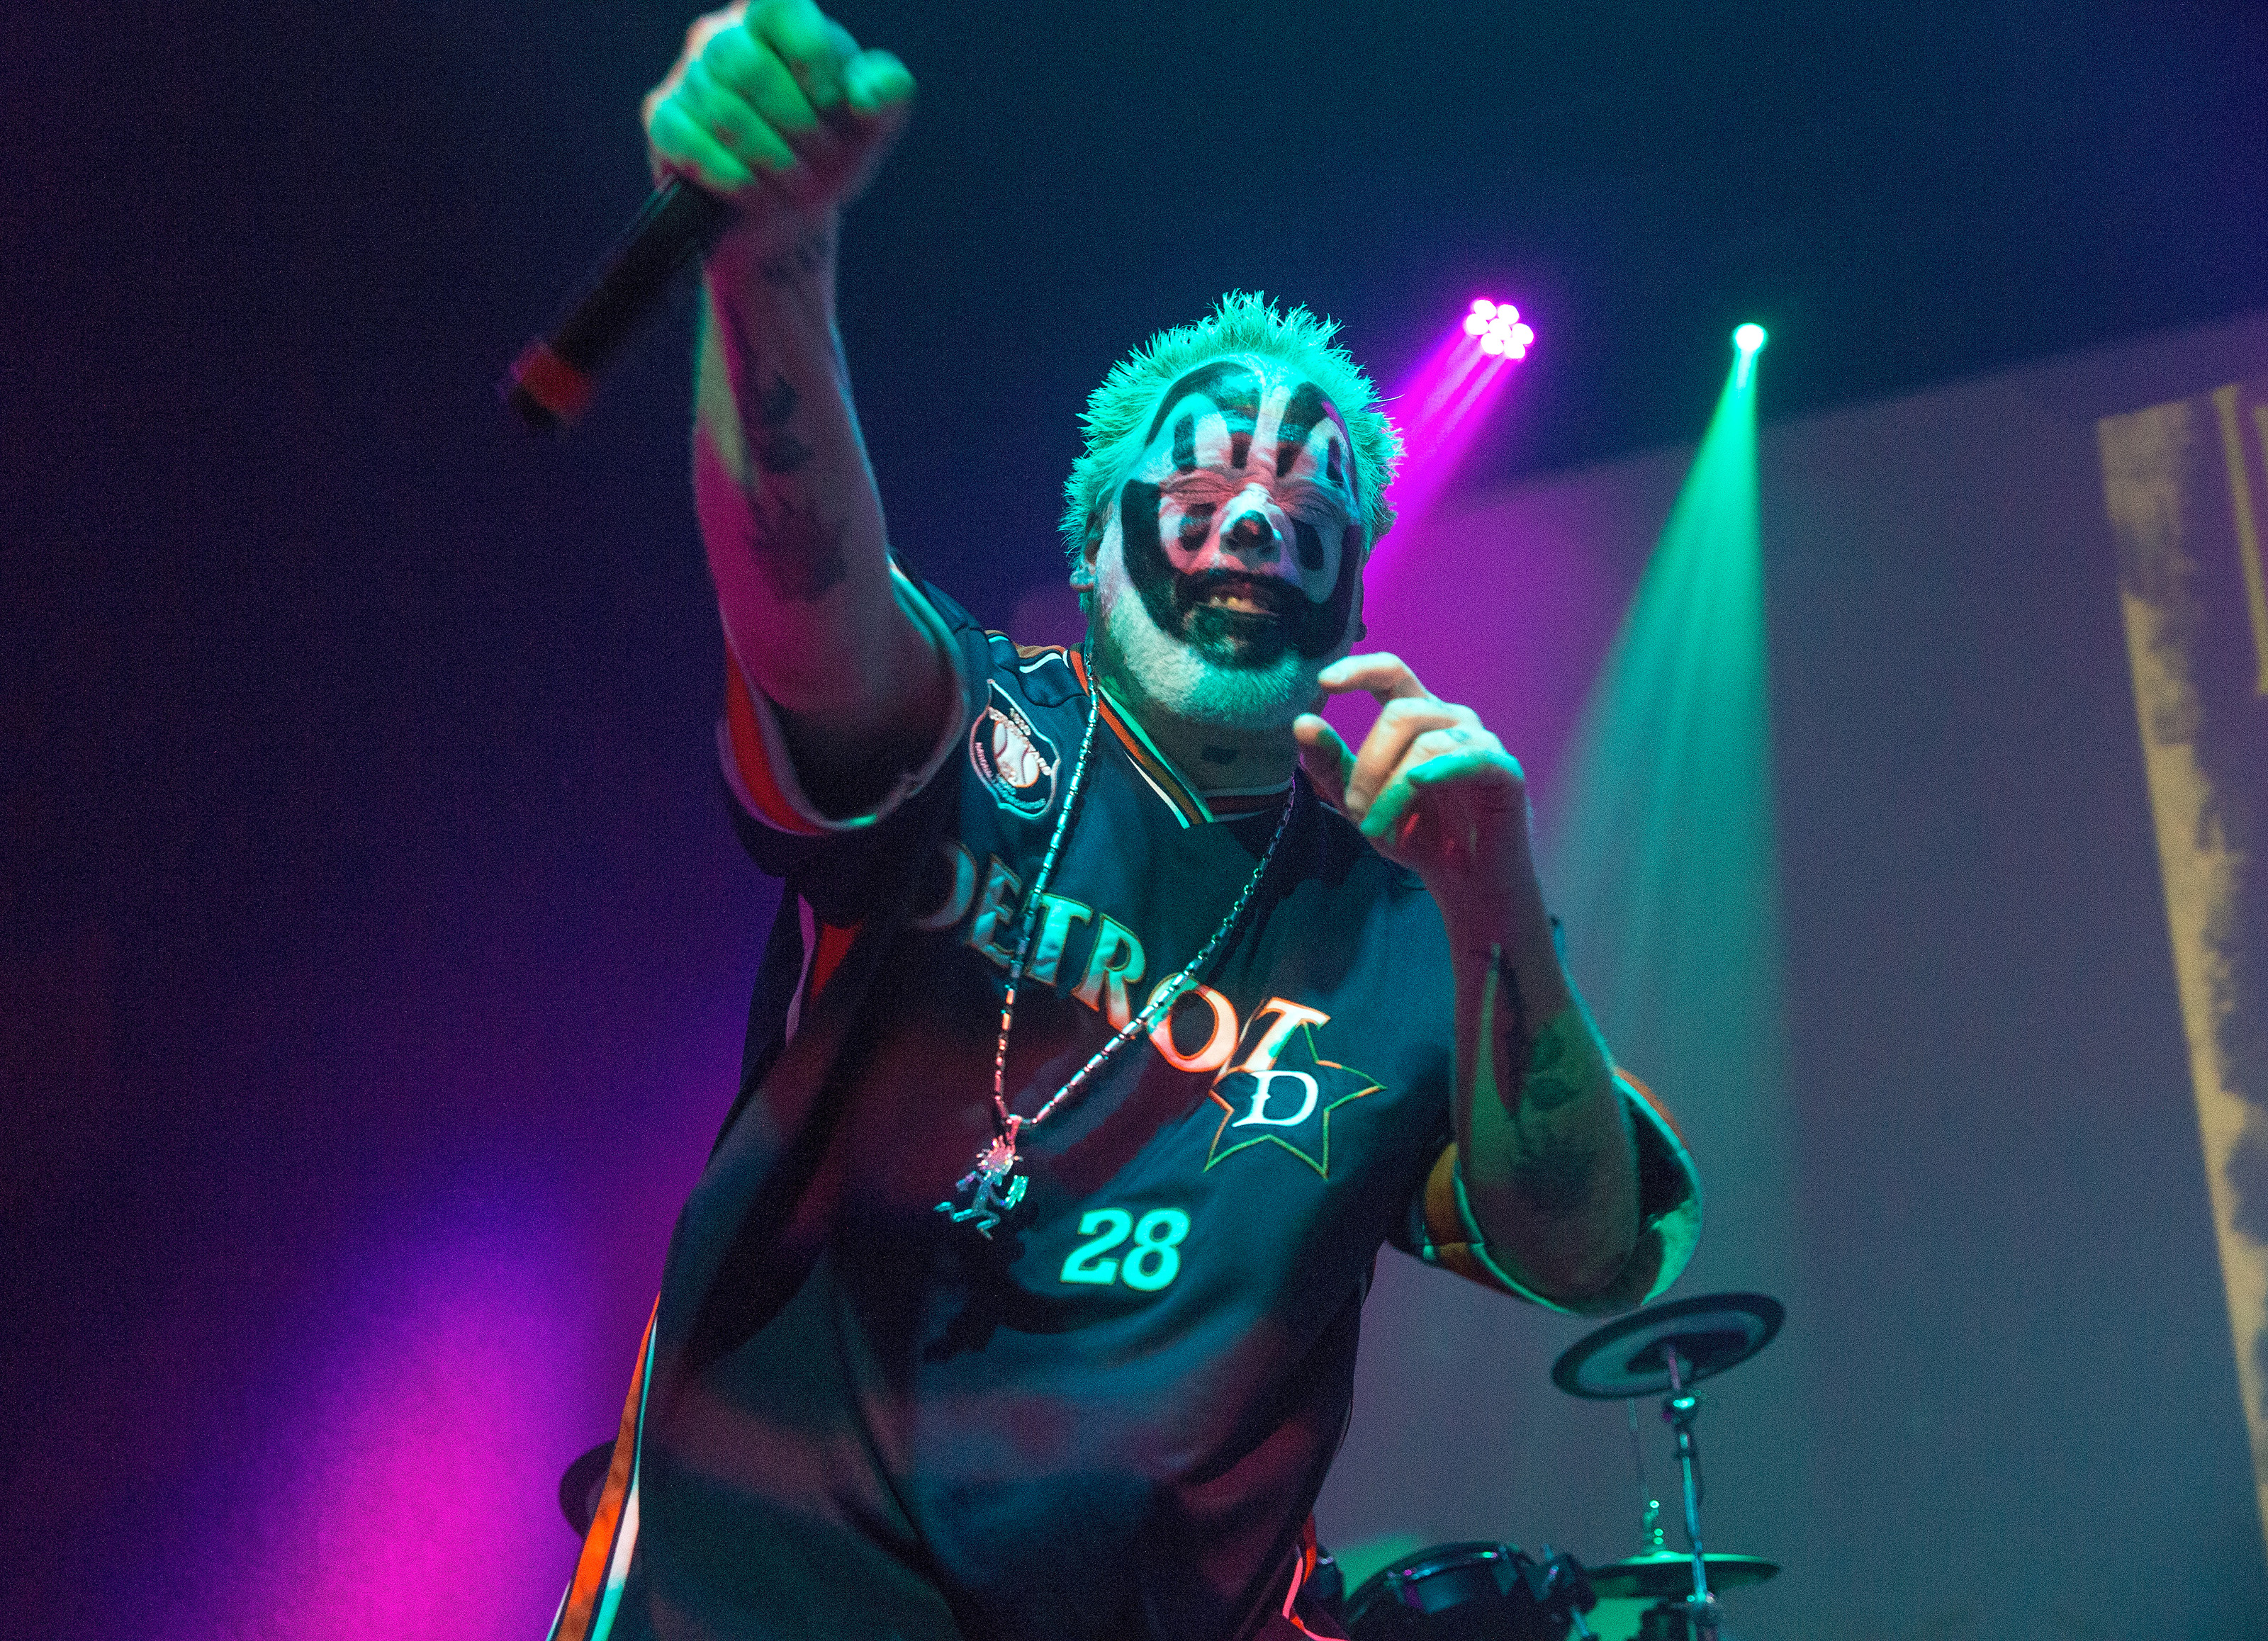 Violent J of Insane Clown Posse performs on June 16, 2016 in Indianapolis, Indiana.